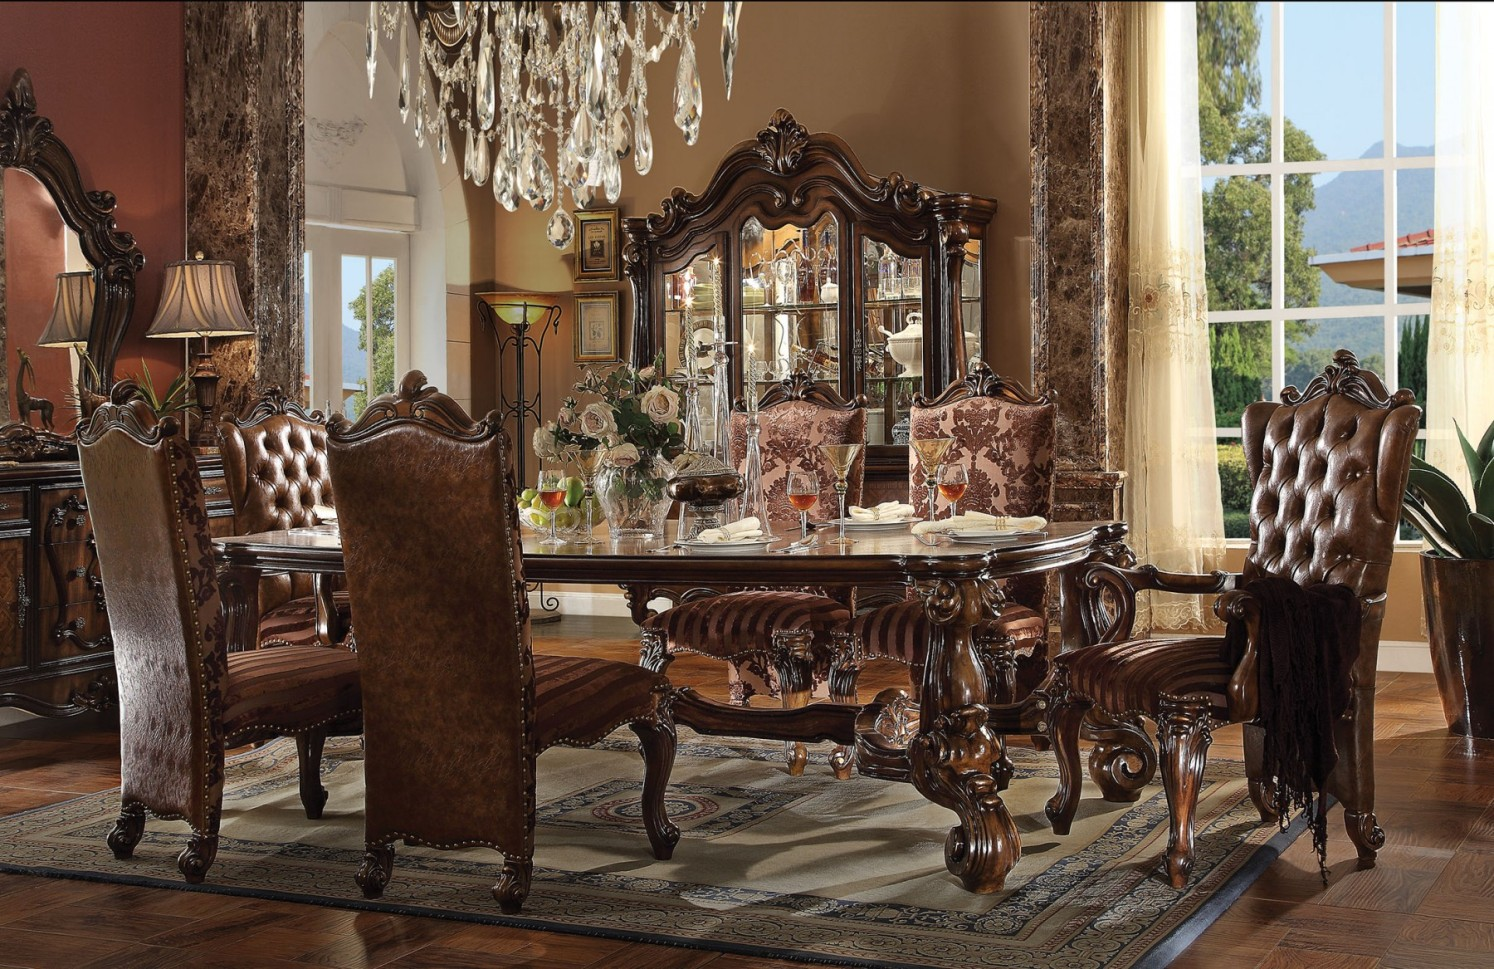 Formal dining room sets how elegance is made possible for Formal dining room